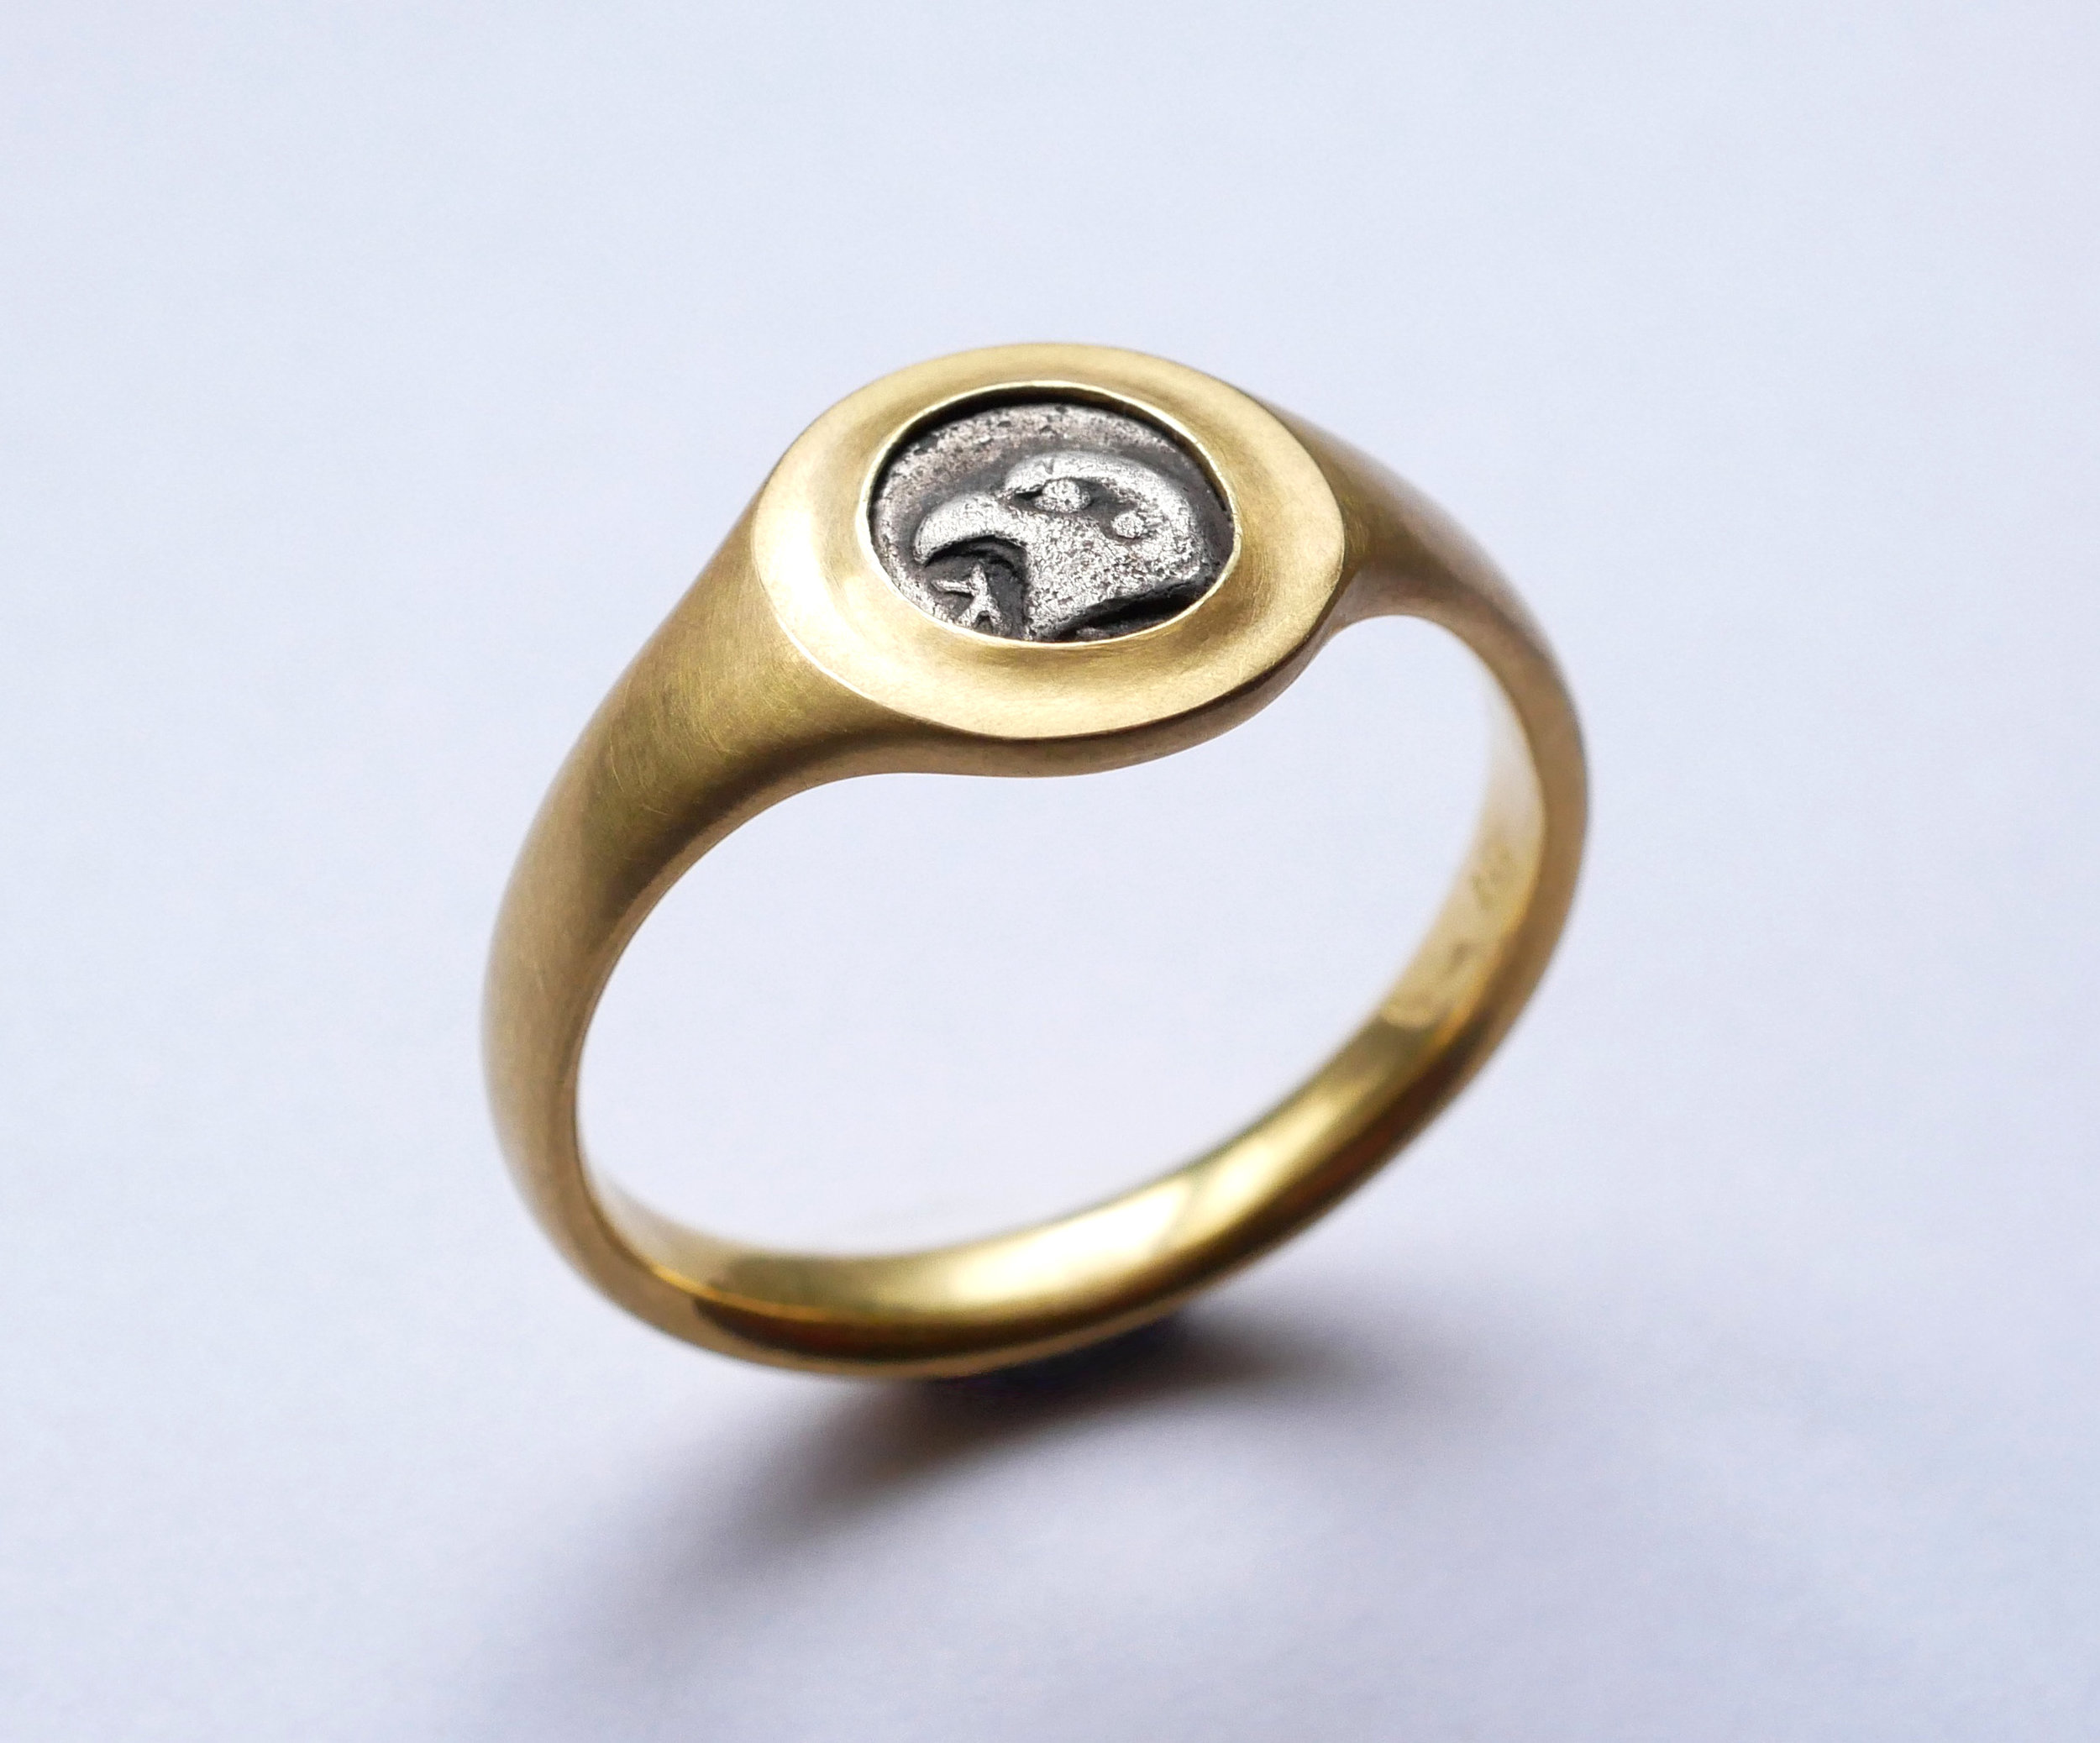 ring_greekcoin_aeolis3.jpg